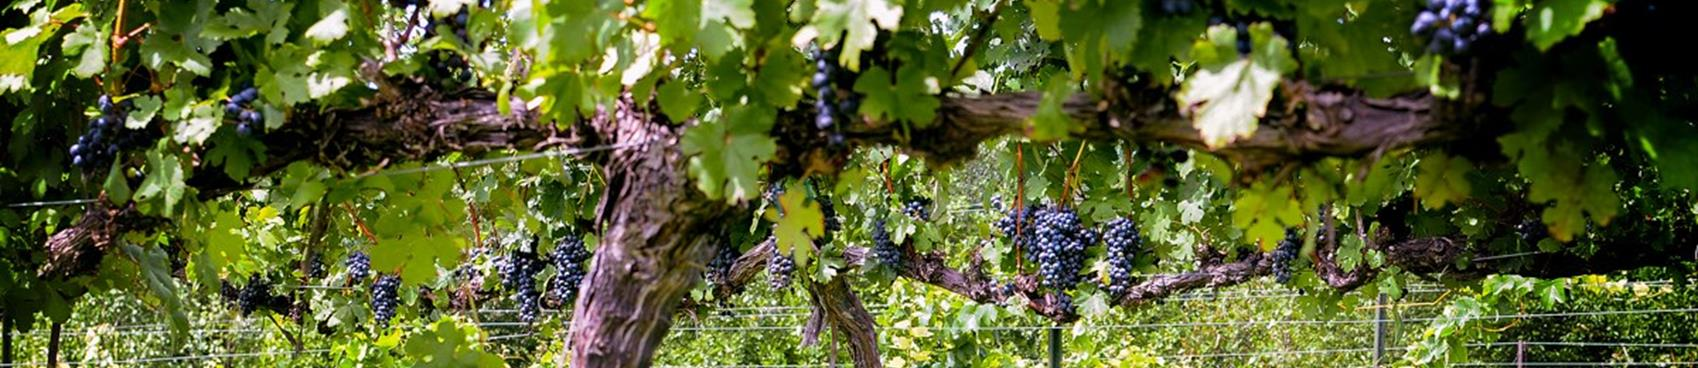 Signature Experience - Tour with the Winemaker